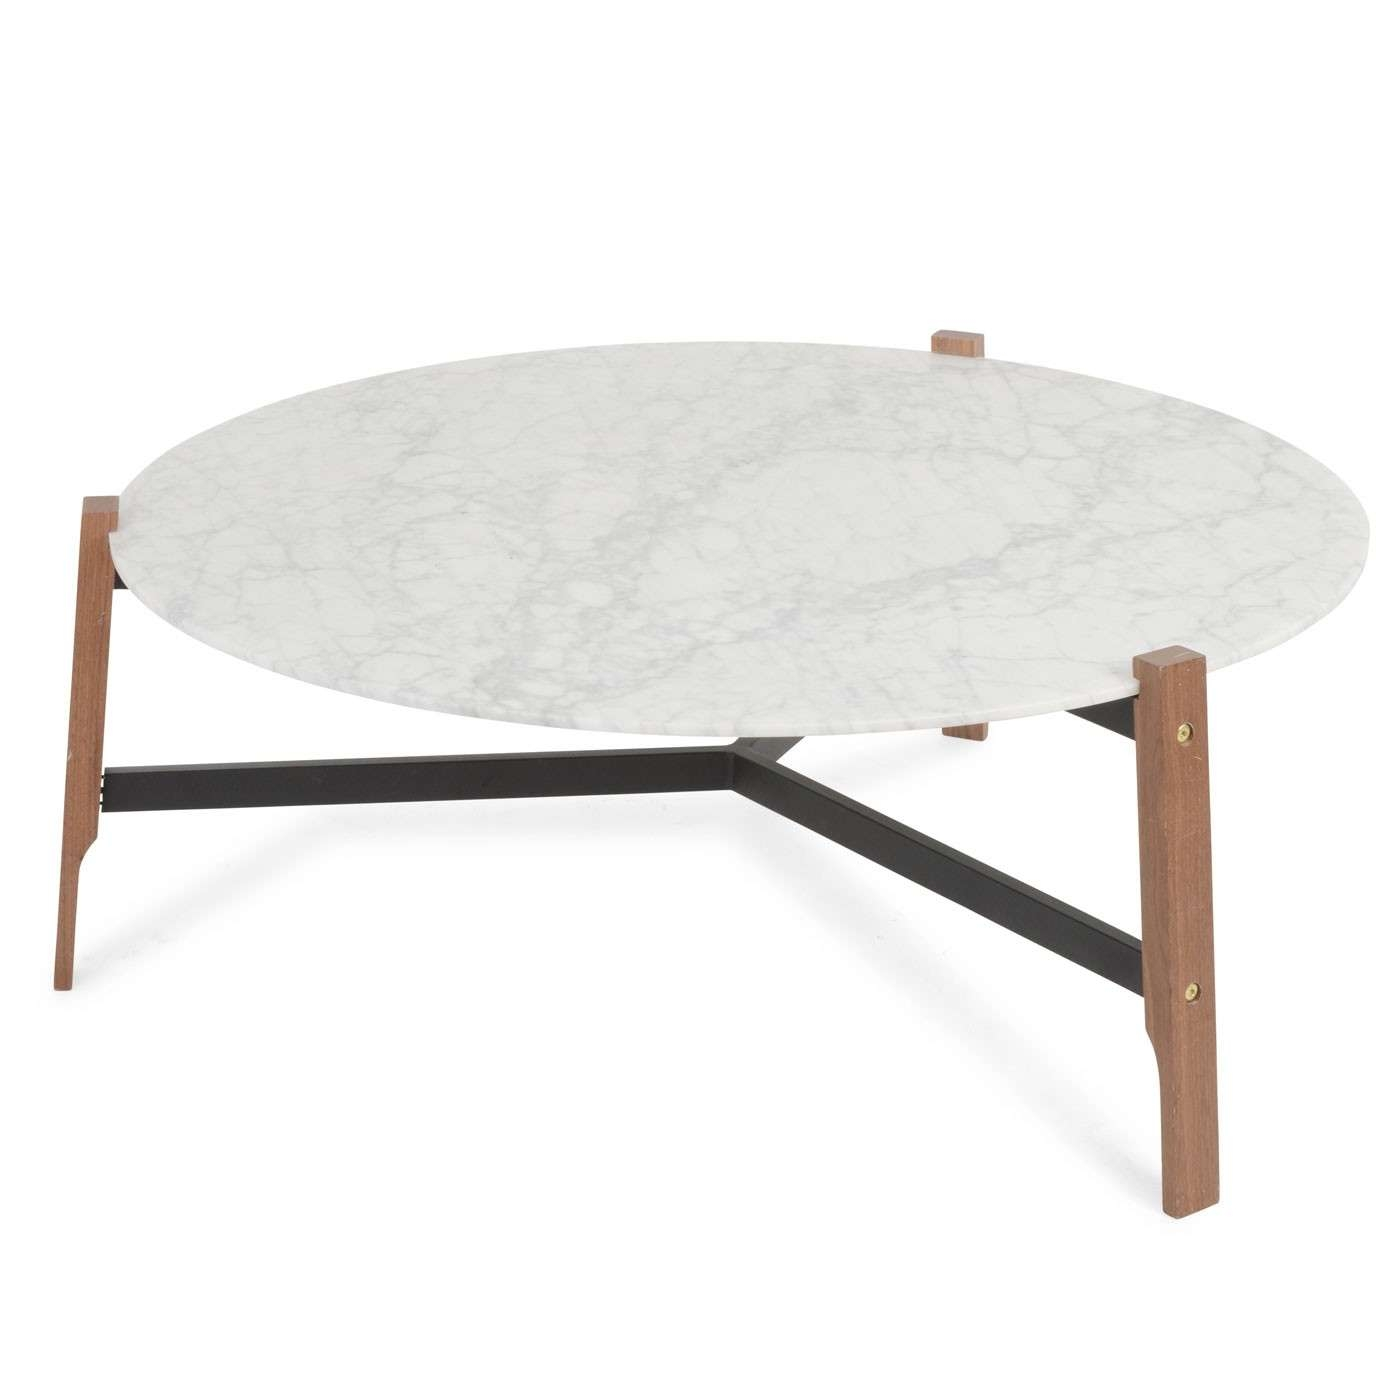 Glamorous Marble Coffee Table Vancouver Ideas White Marble Coffee With Regard To Best And Newest Small Marble Coffee Tables (View 13 of 20)